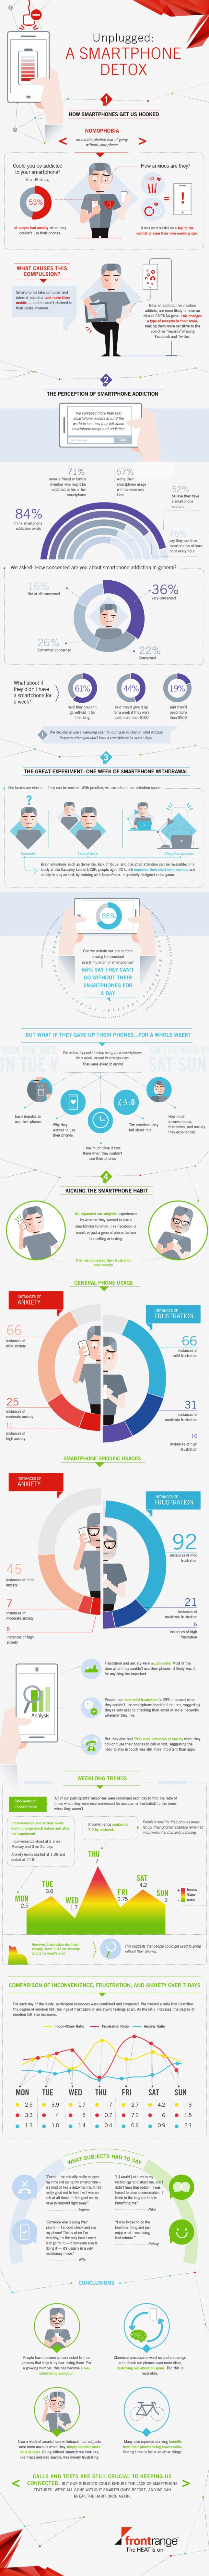 surviving-without-smartphone-infographic